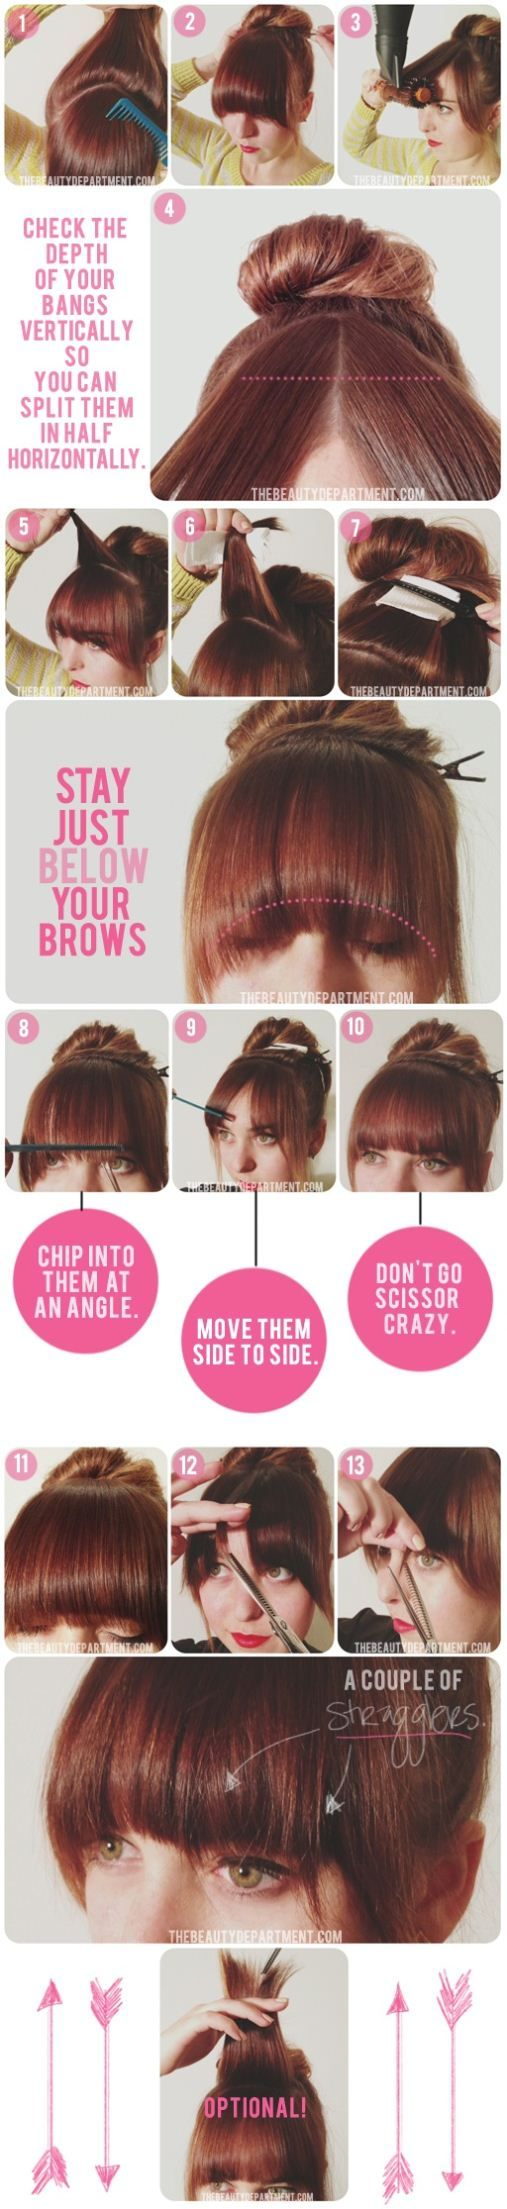 How-to-cut-your-bangs about